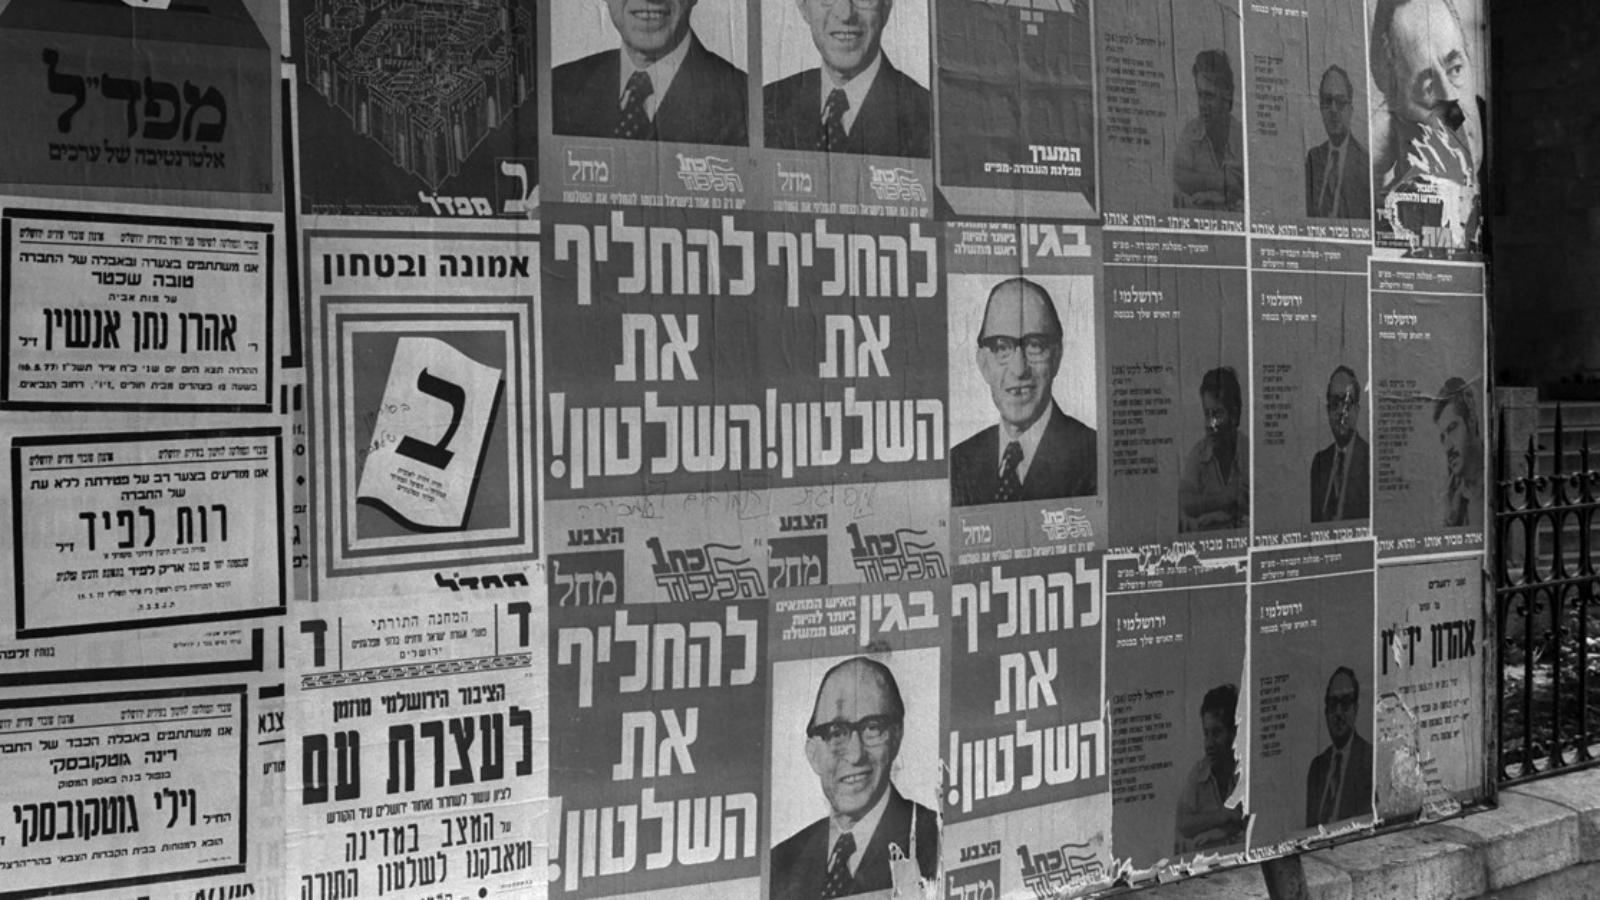 A surprising chronicle of 20 Israeli election firsts - ISRAEL21c